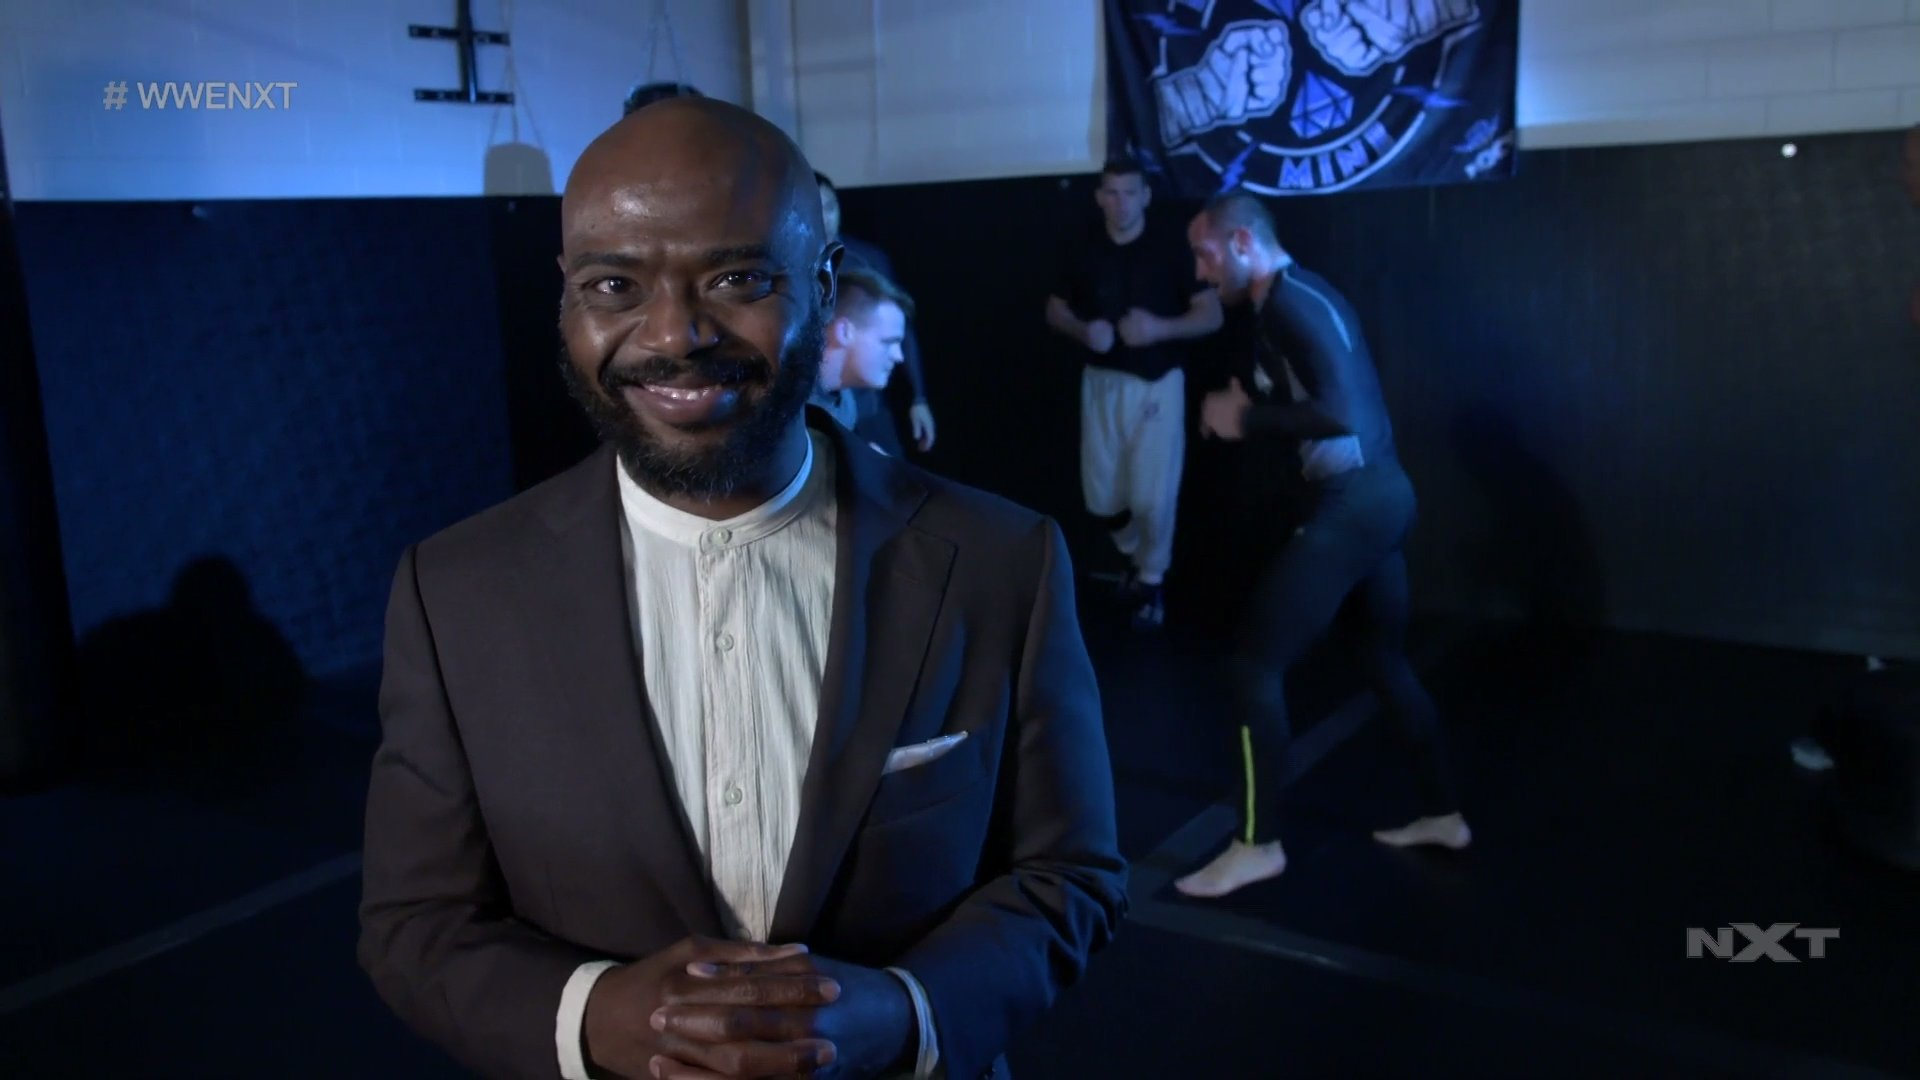 The Creed Brothers Appear In WWE NXT Segment, Loaded Line-Up For Next Week's NXT